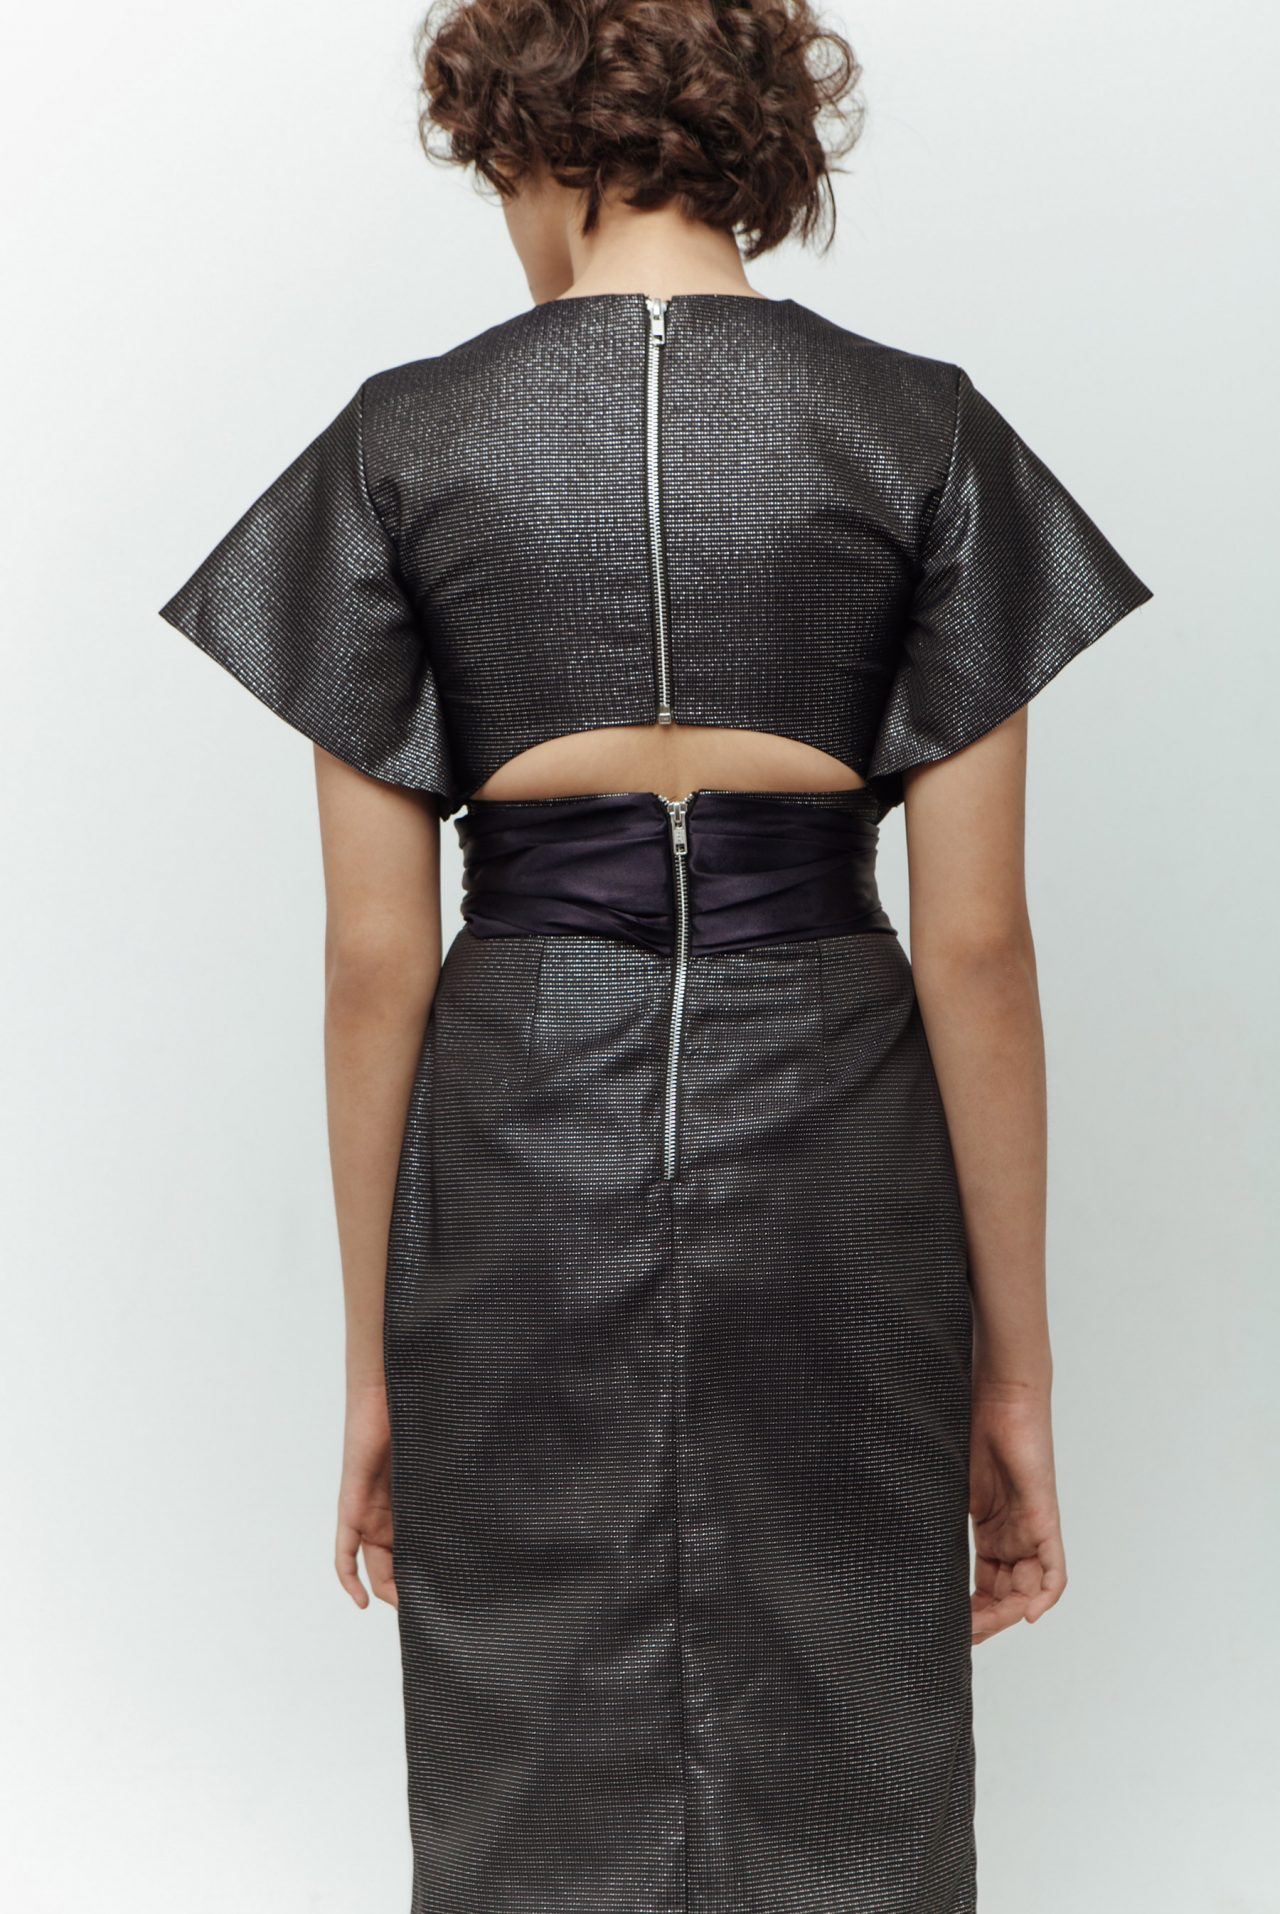 BACK-DETAIL-WITH-FRONT-RIBBON-MIDI-DRESS-3